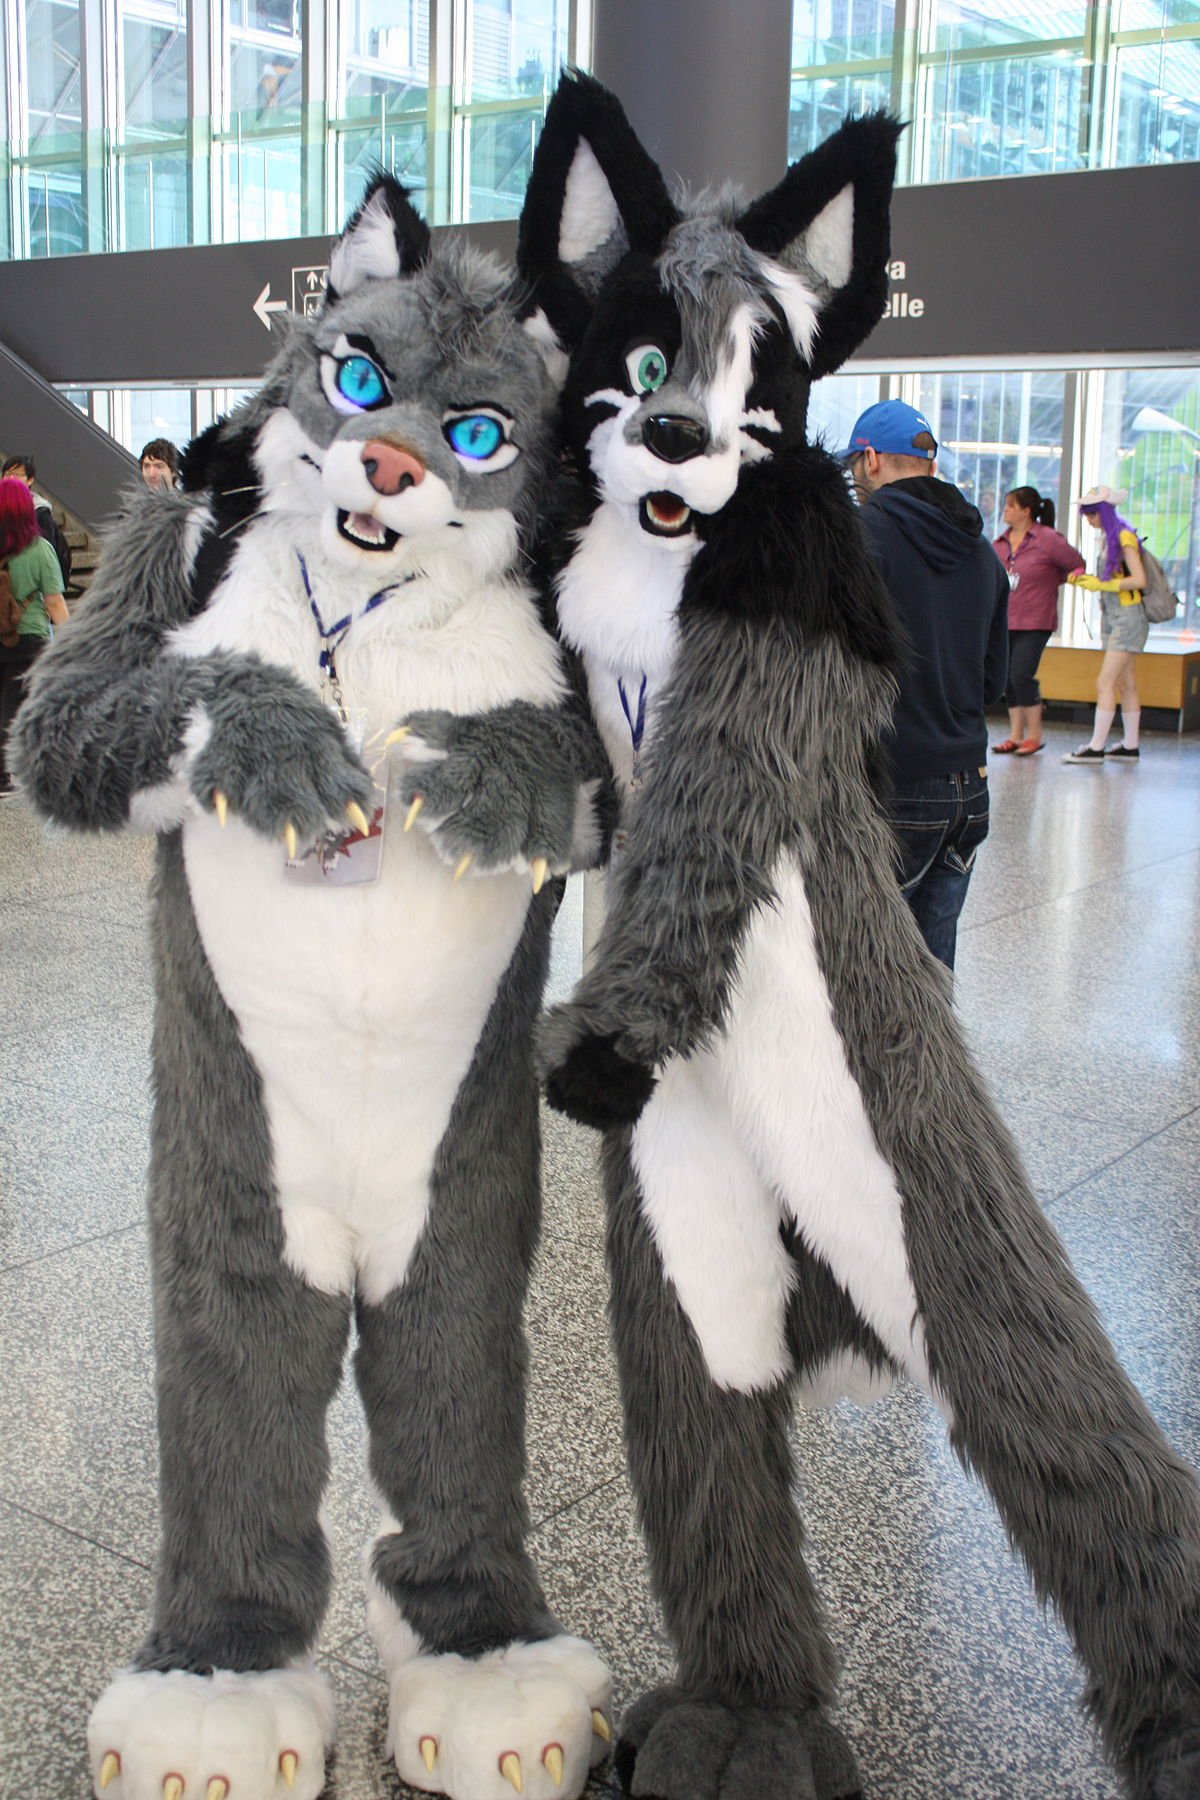 Animal Instincts Watch Online furry fandom - wikipedia